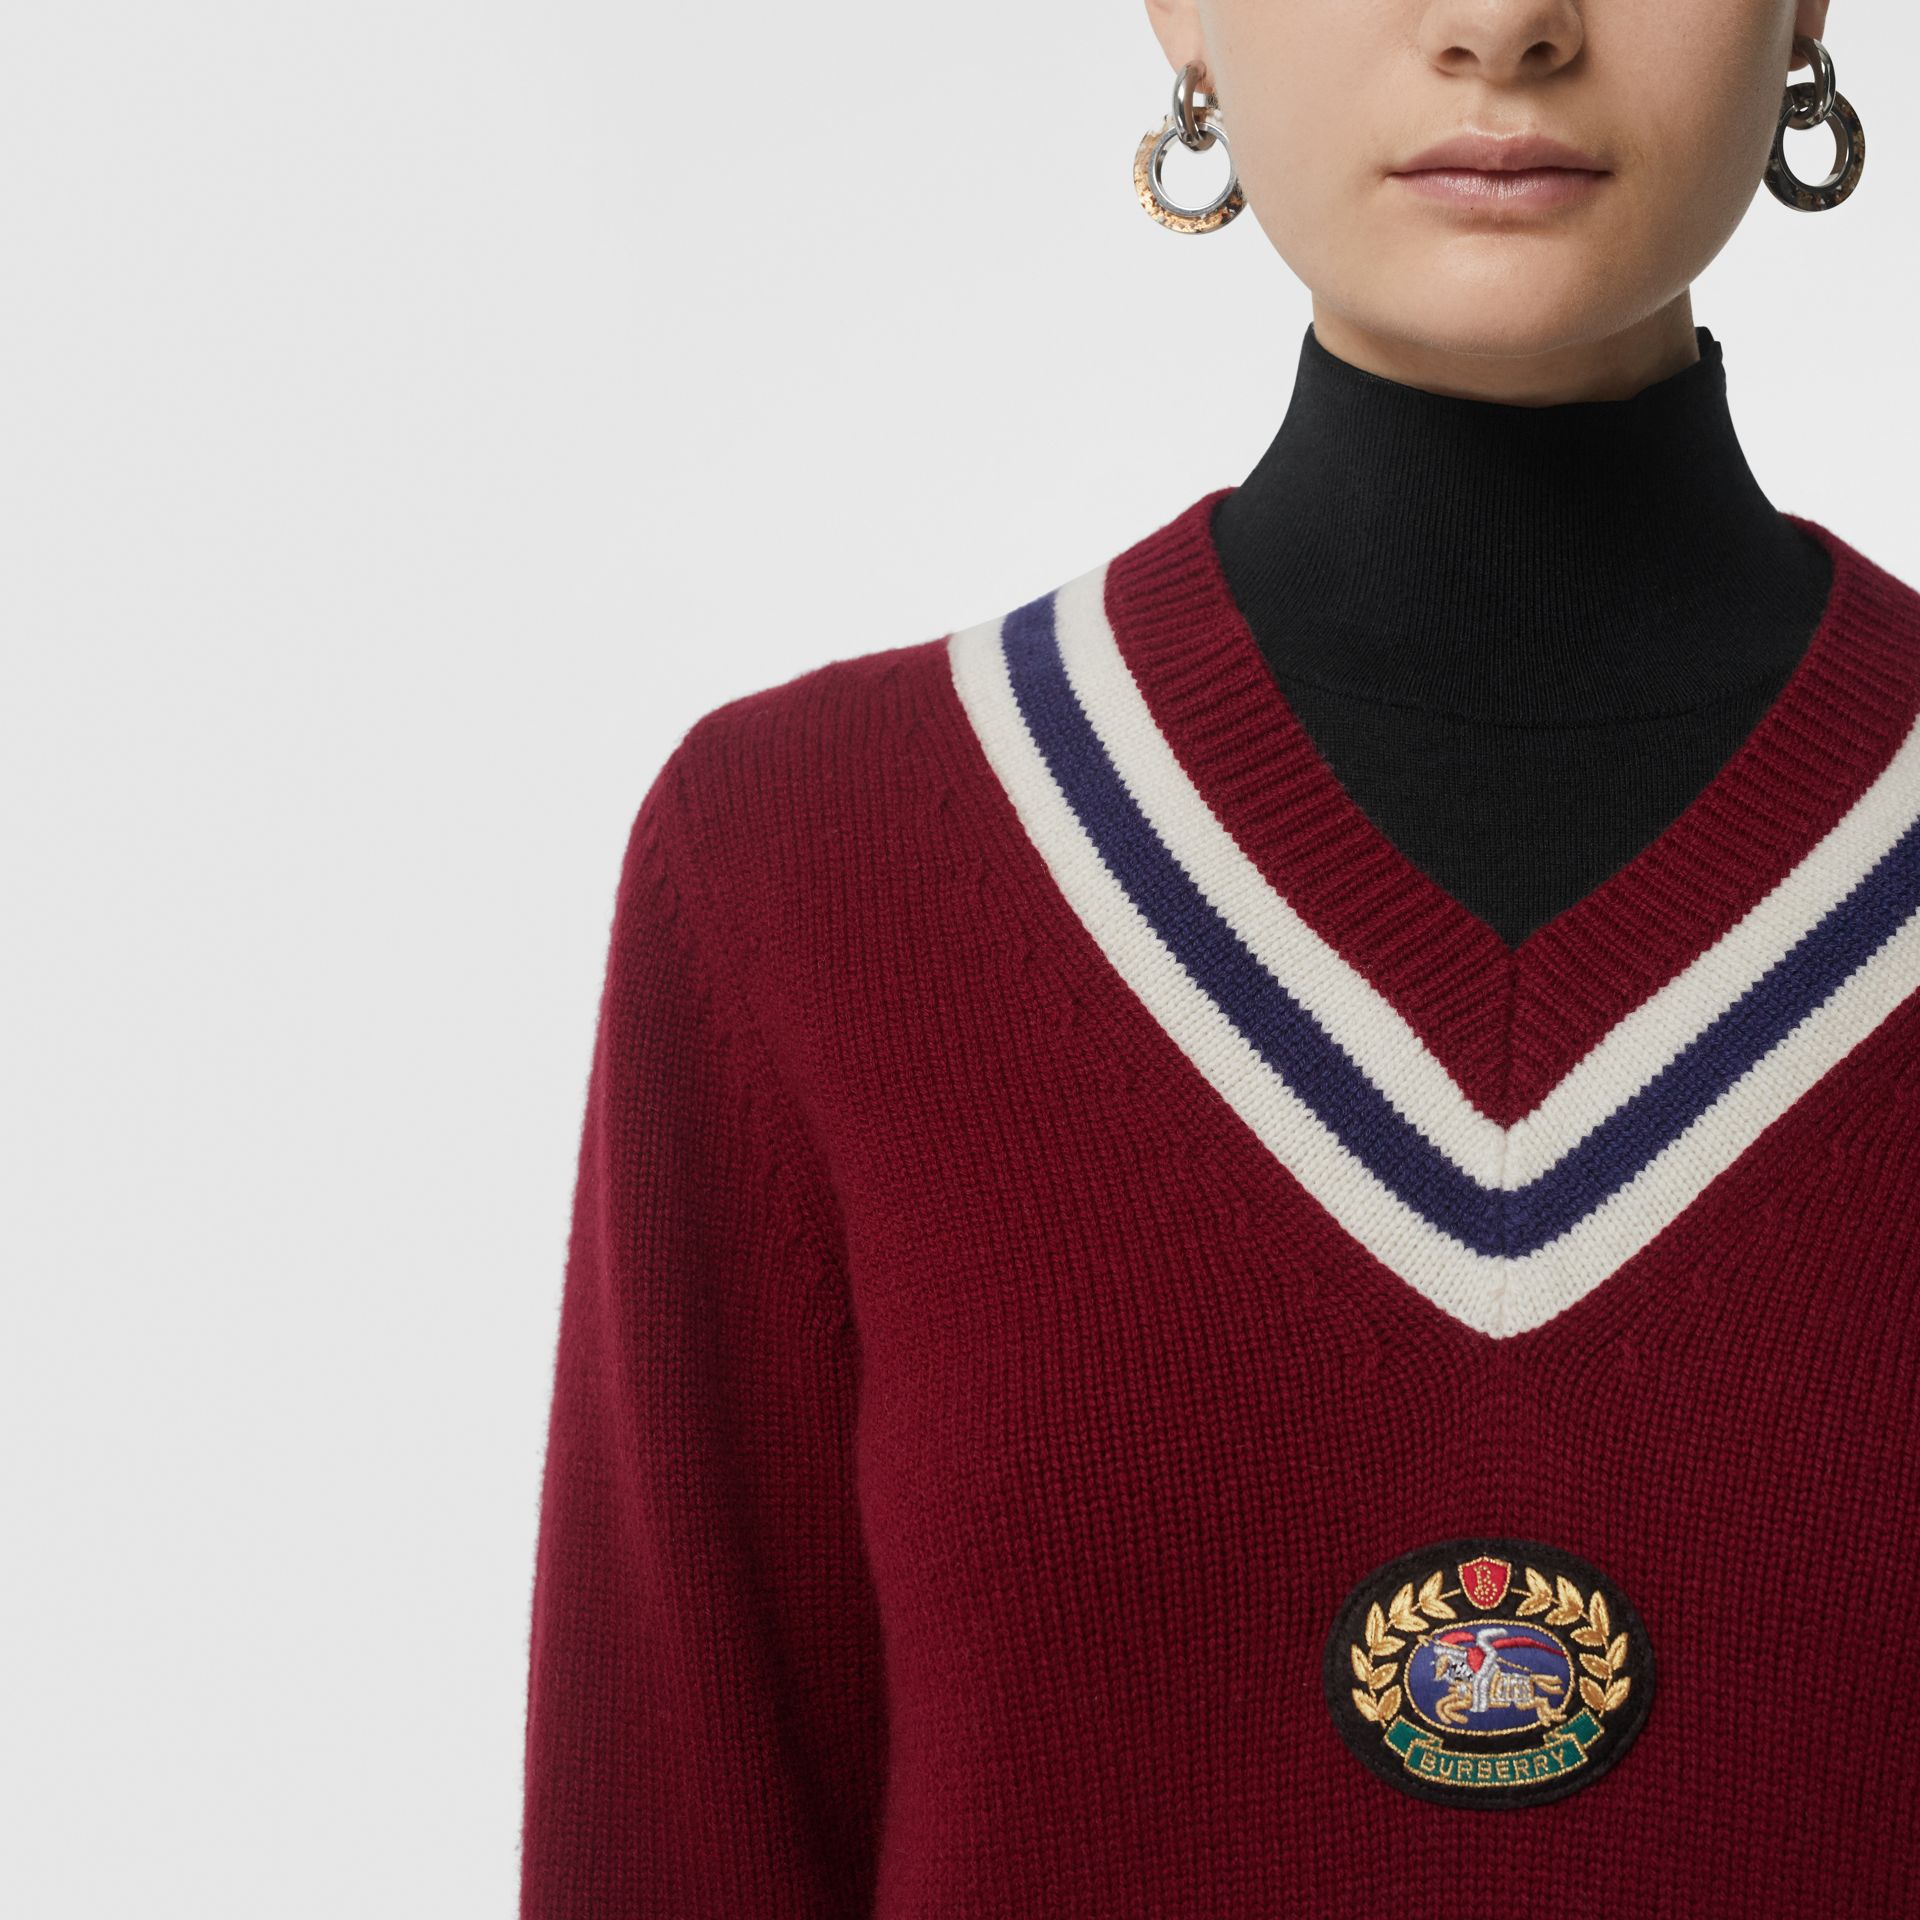 Embroidered Crest Wool Cashmere Sweater in Burgundy - Women | Burberry - gallery image 1